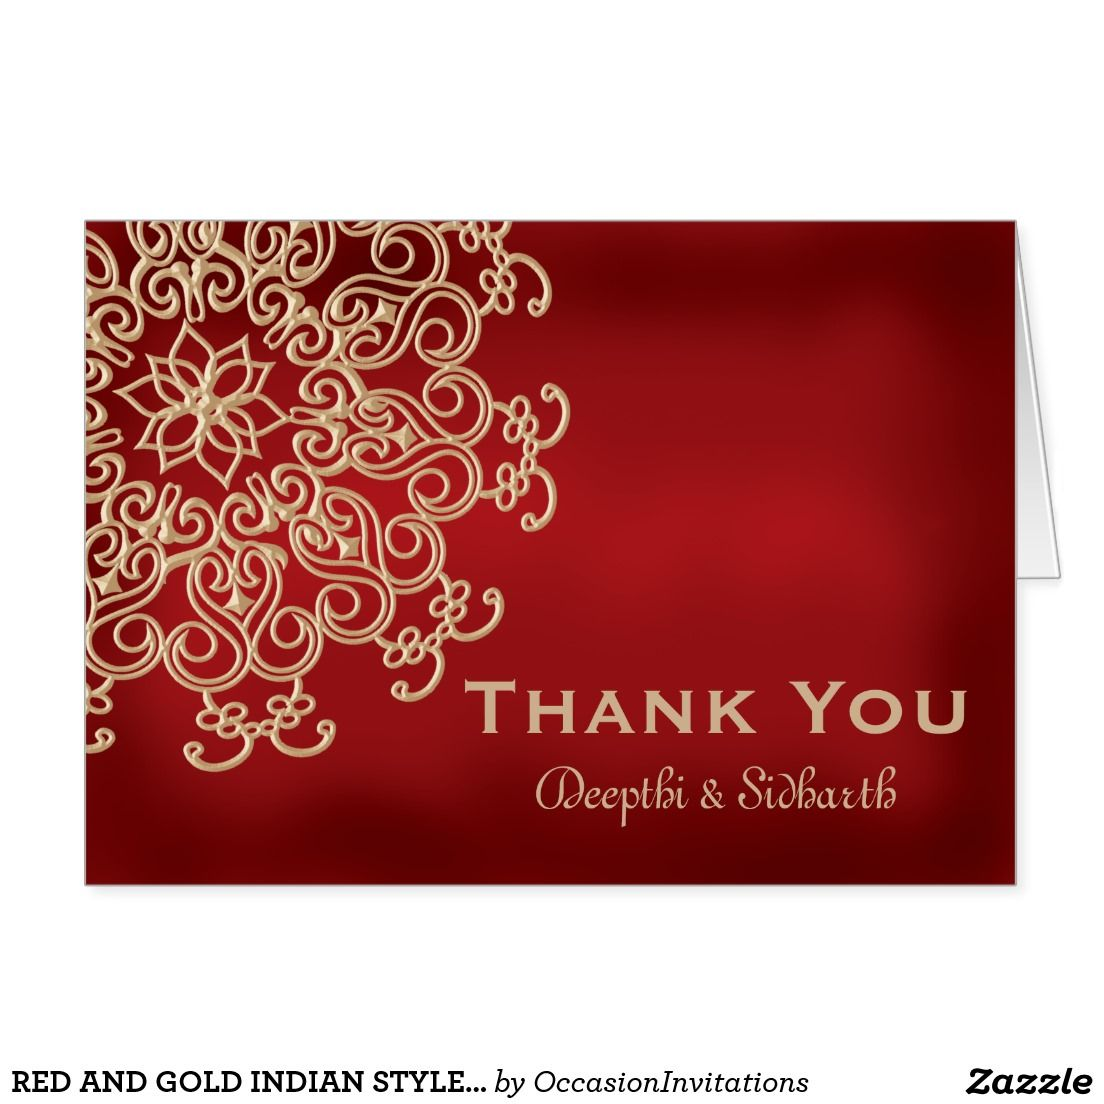 RED AND GOLD INDIAN STYLE WEDDING THANK YOU CARD | Convite ...